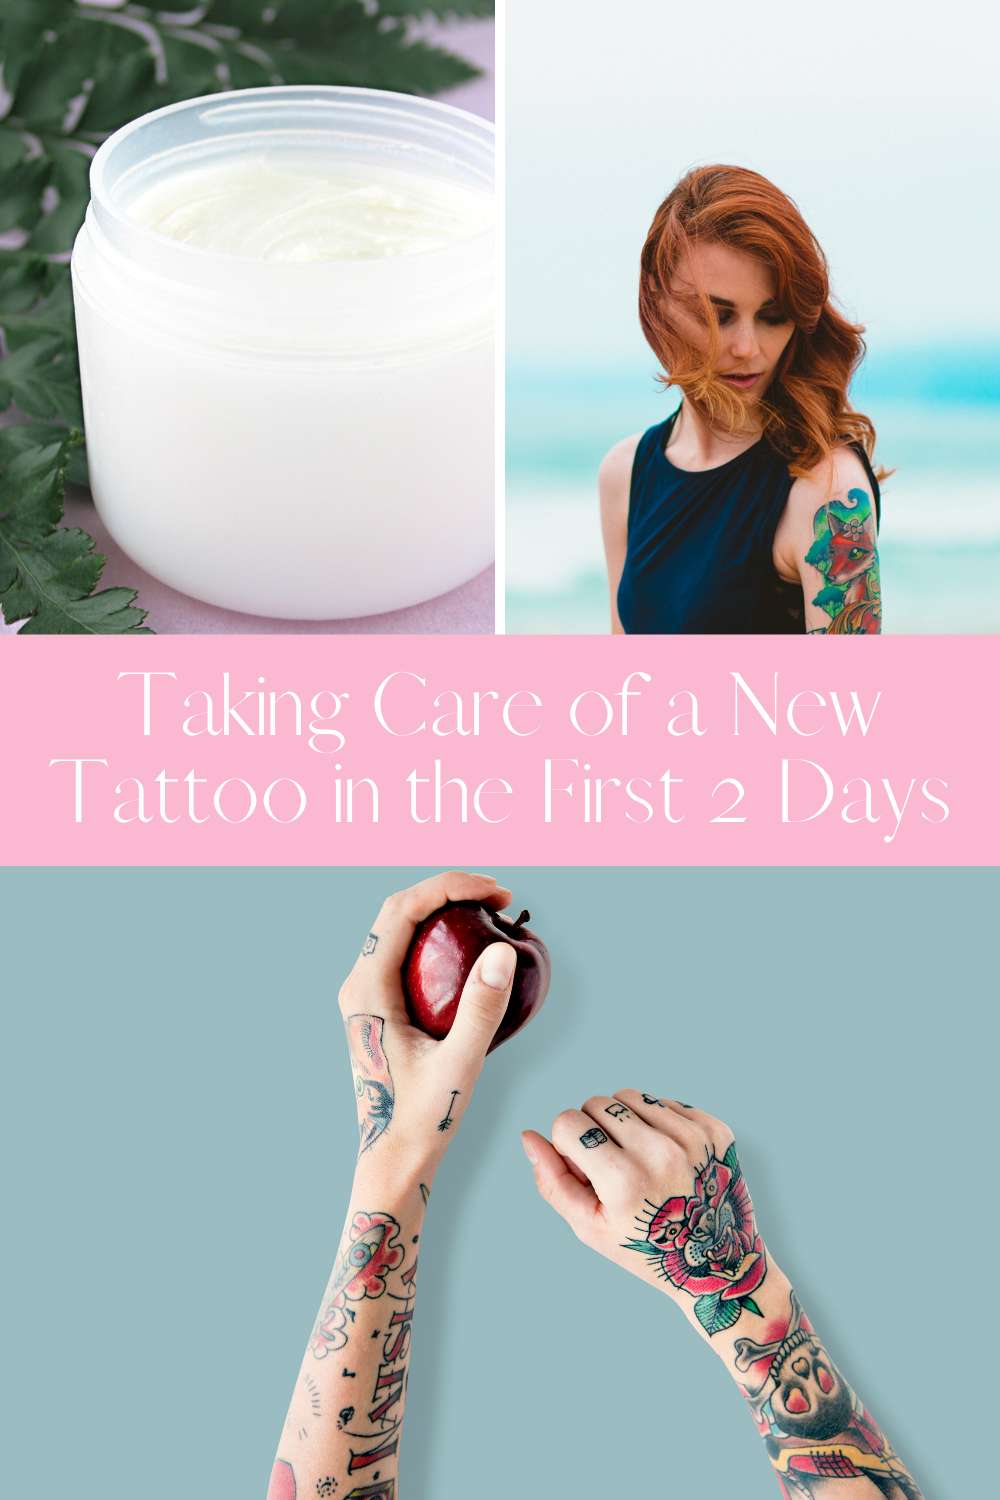 Cleaning tattoo tips for the first week